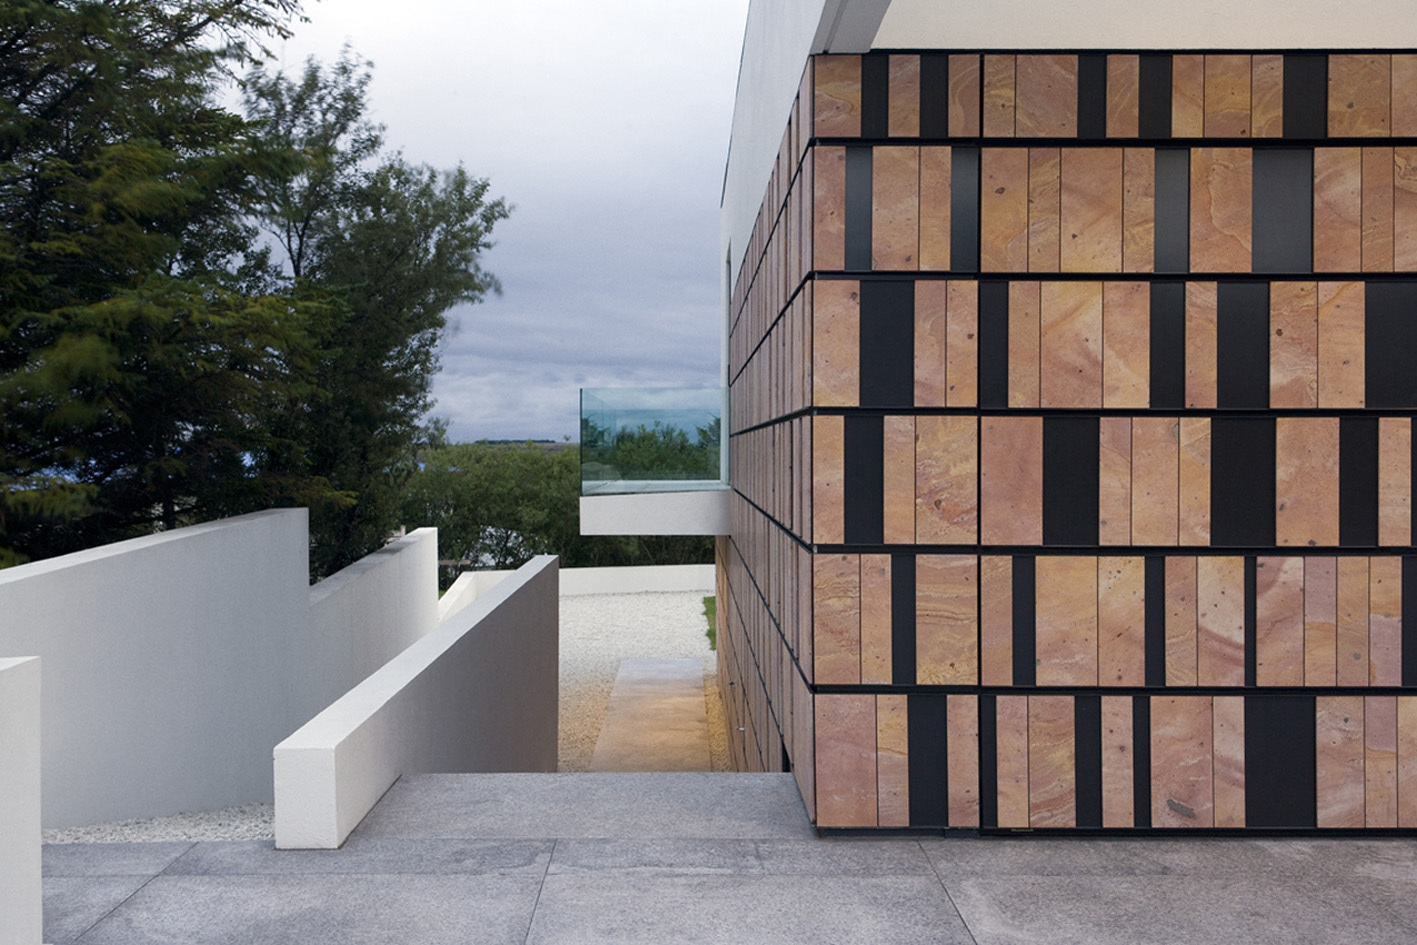 access in the backyard of the Monolithic Mass Empowered by Simplicity - B25 House by PK Arkitektar homesthetics 1 (0)